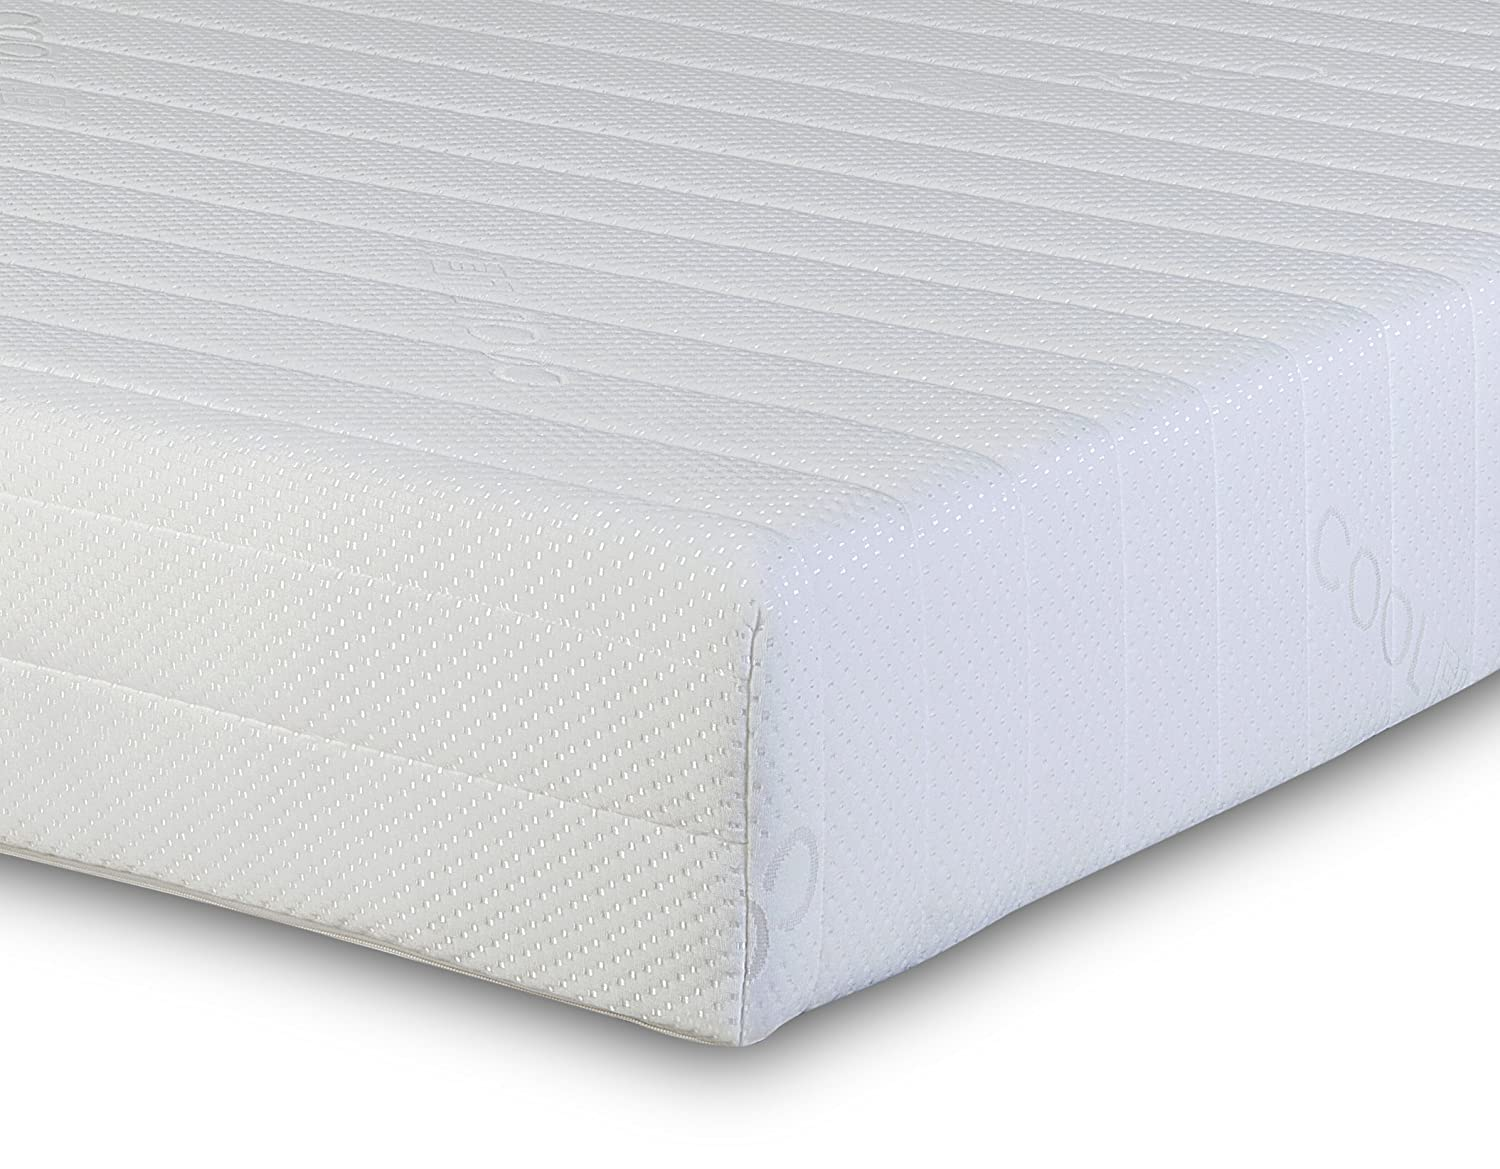 visco therapy memory foam